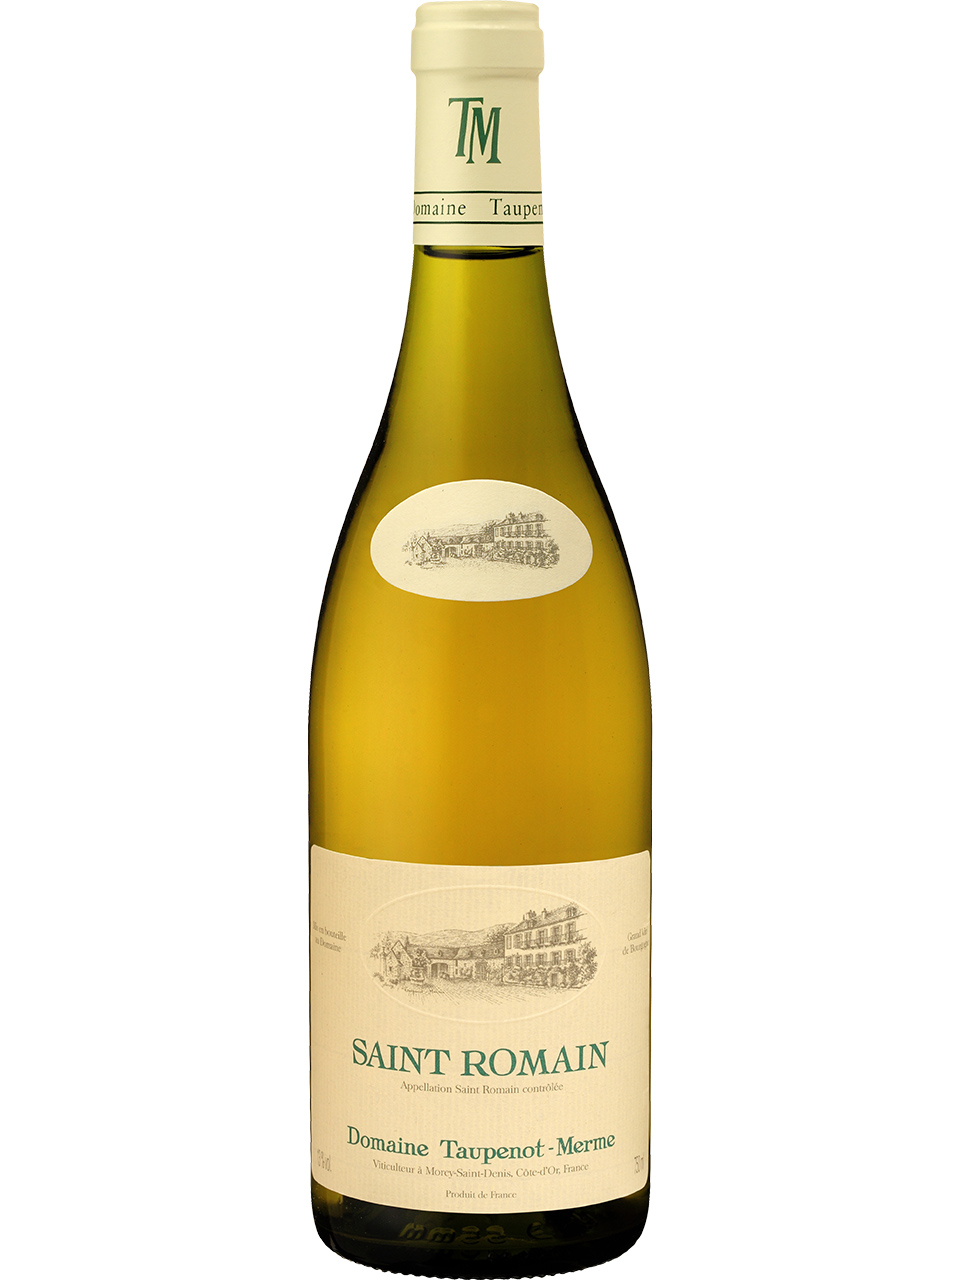 Taupenot Merme Saint Romain White 2017